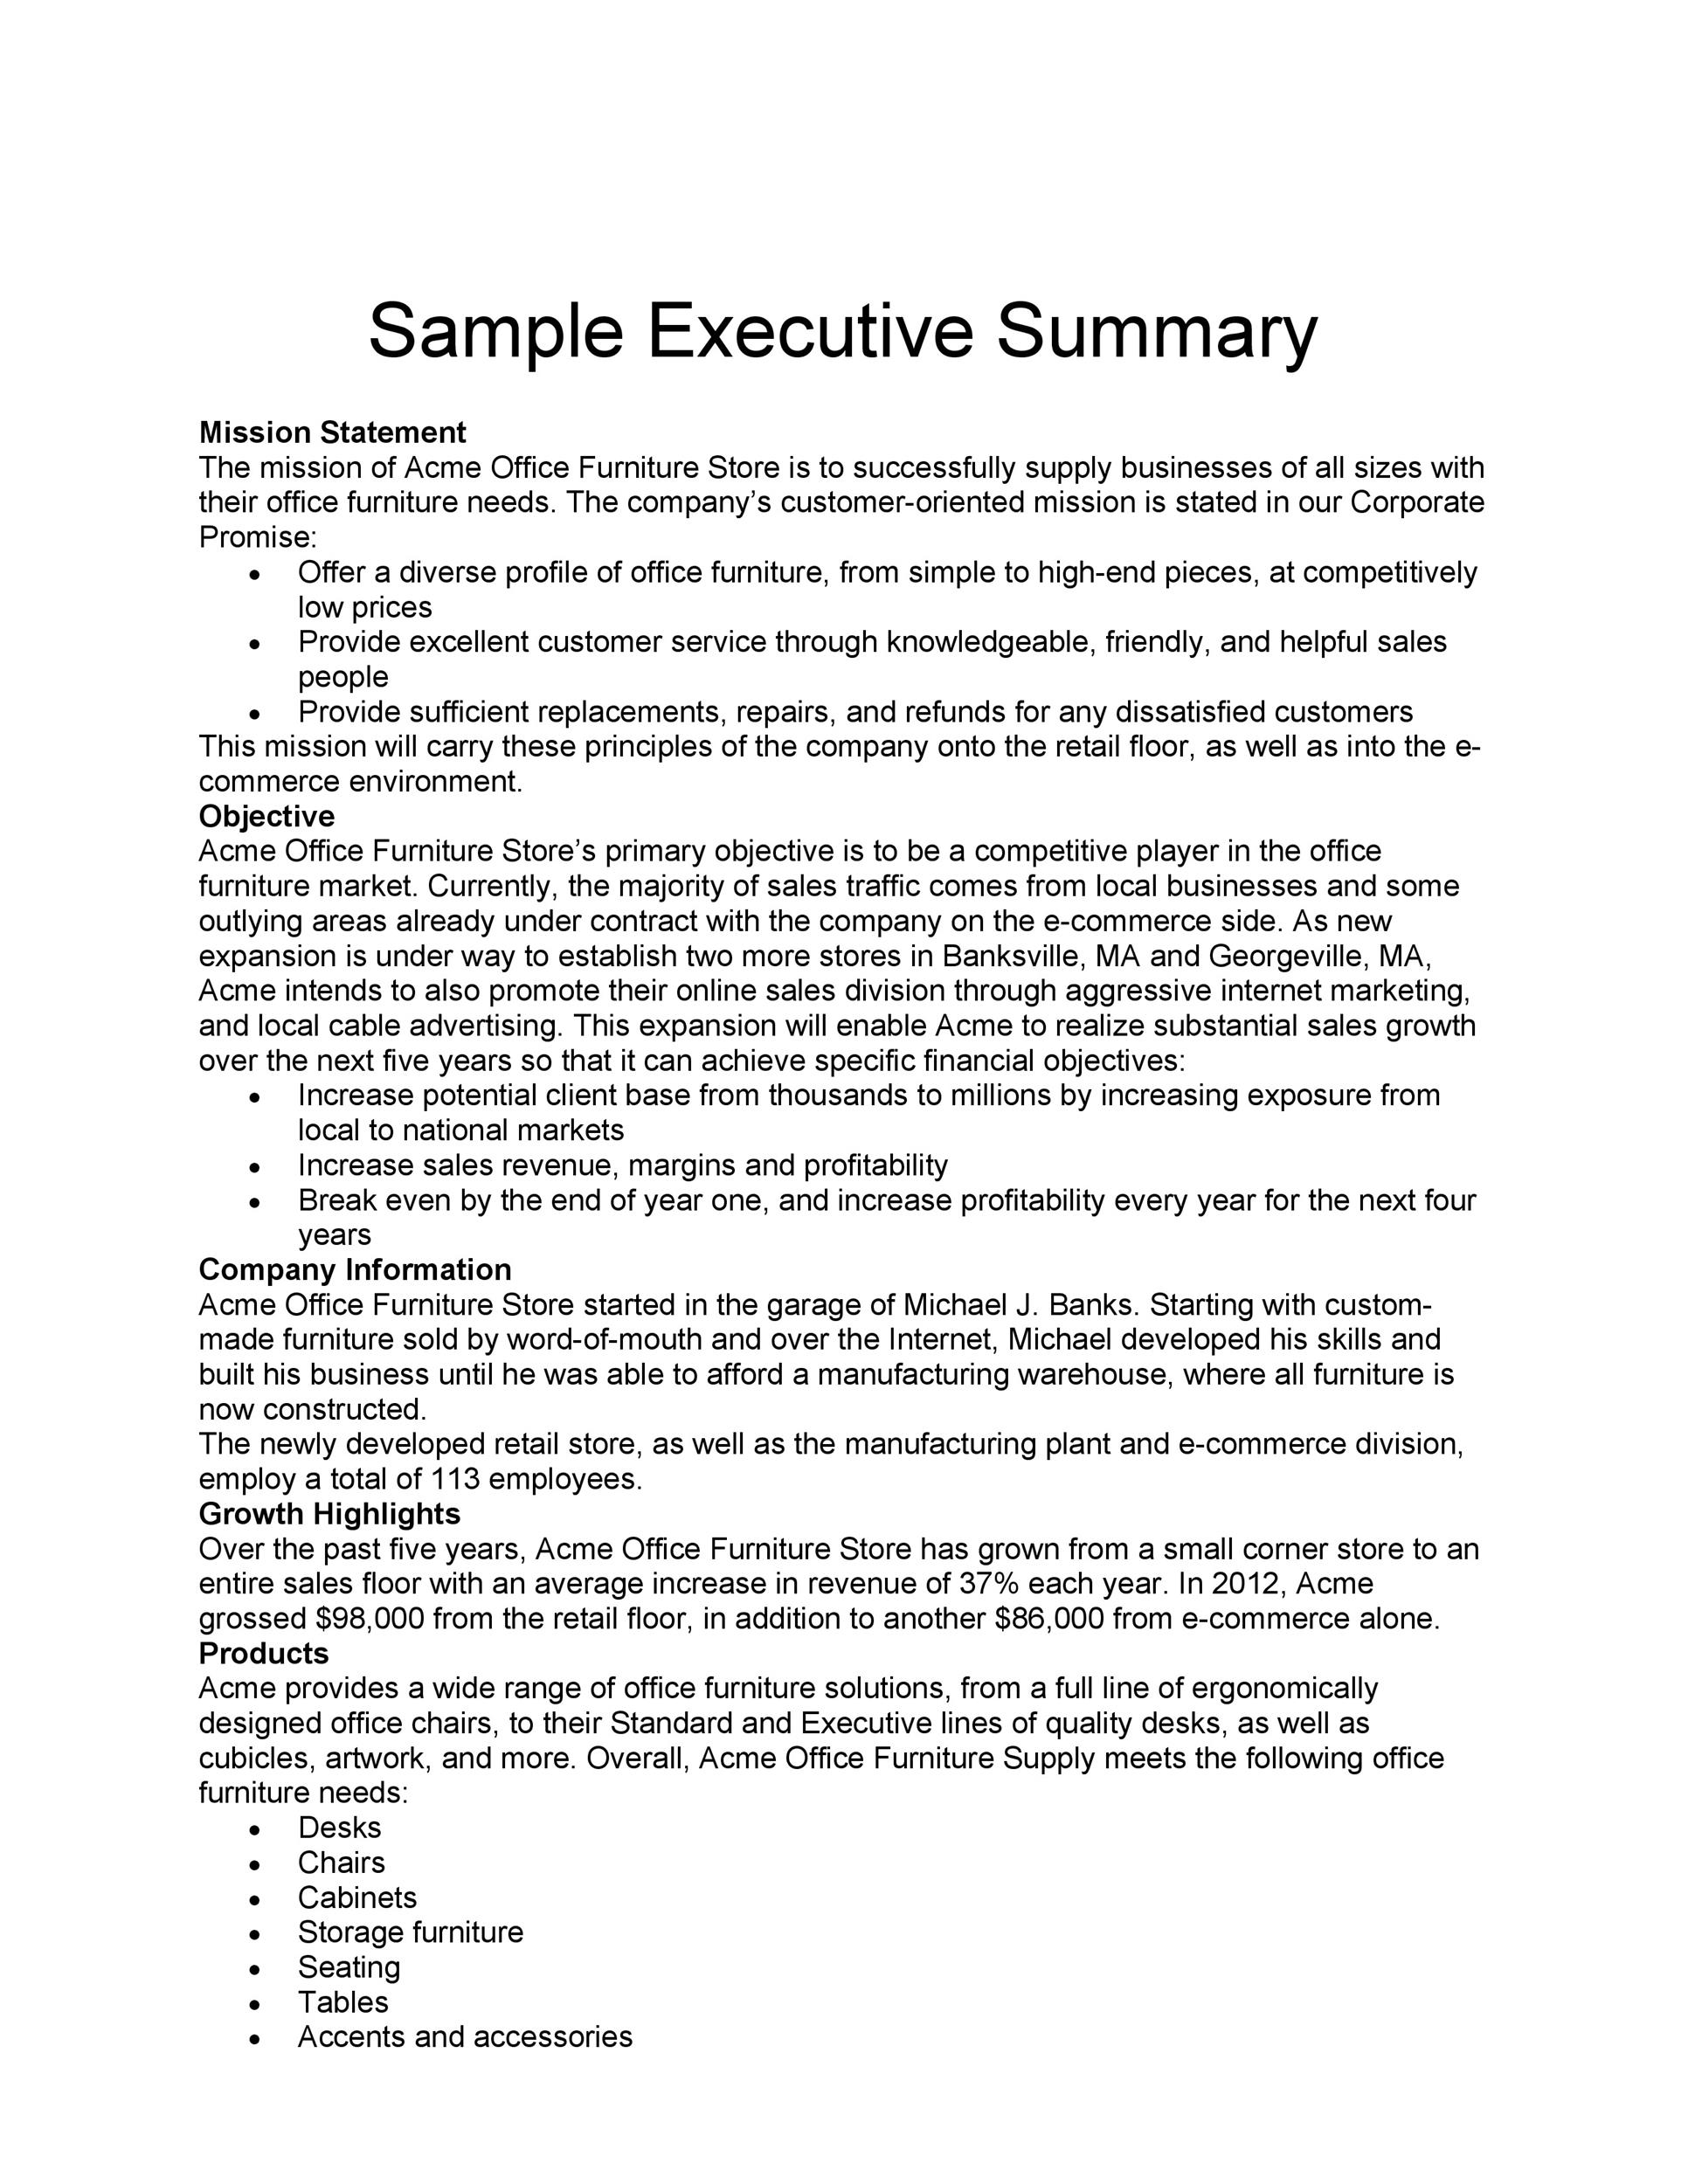 Management Summary Examples  CityEsporaCo